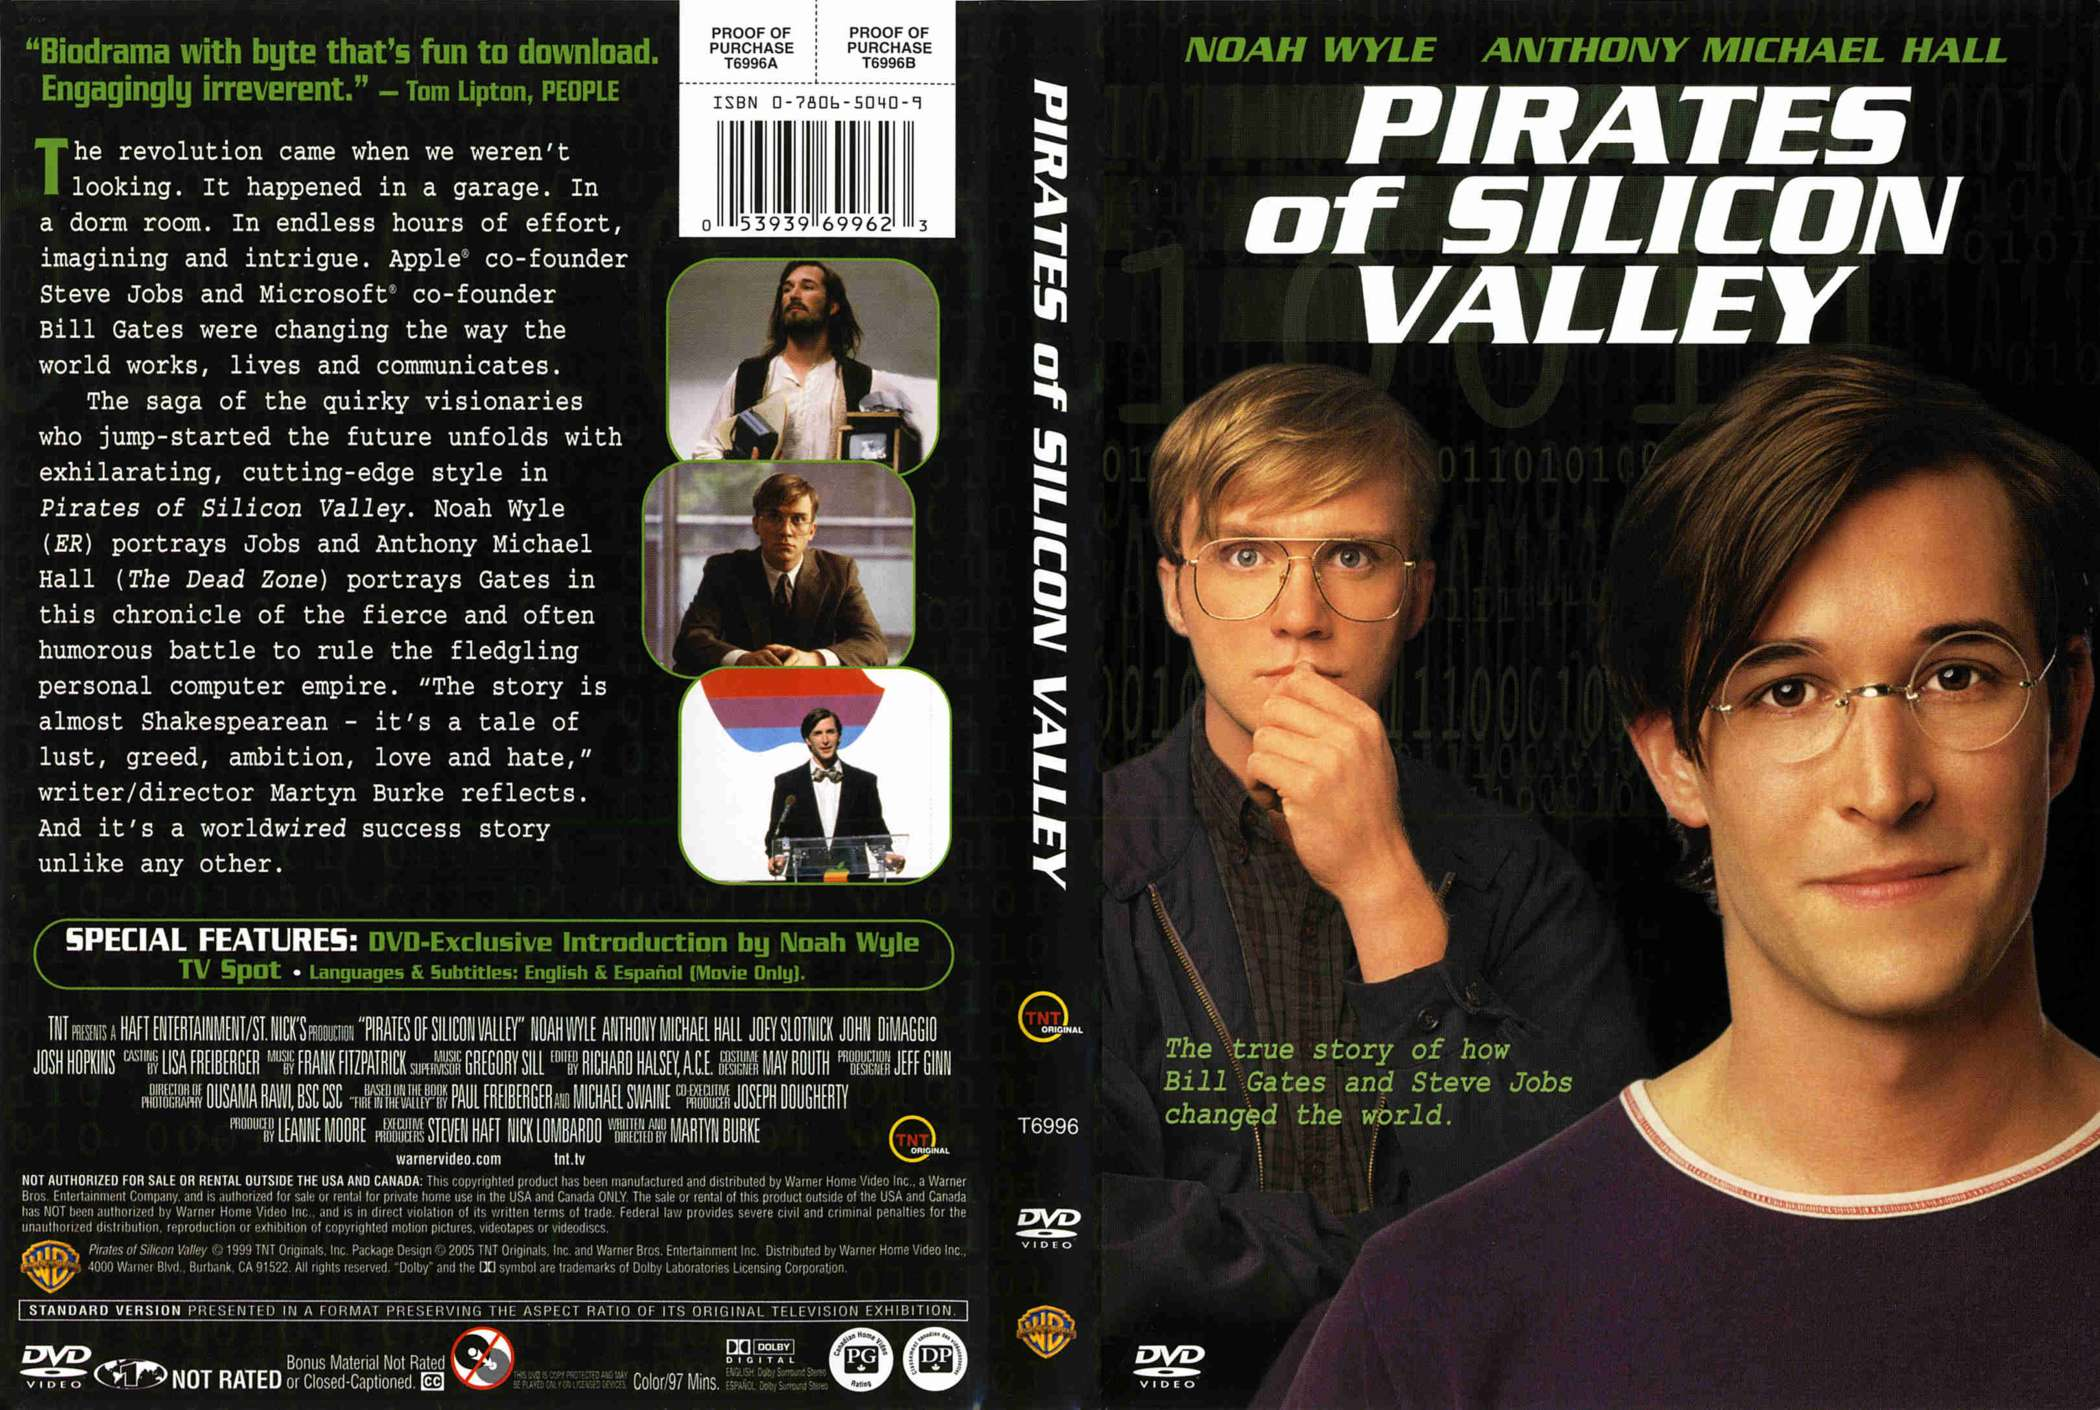 pirates of silicon valley essay reaction paper on pirates of silicon valley bill gates and steve jobs